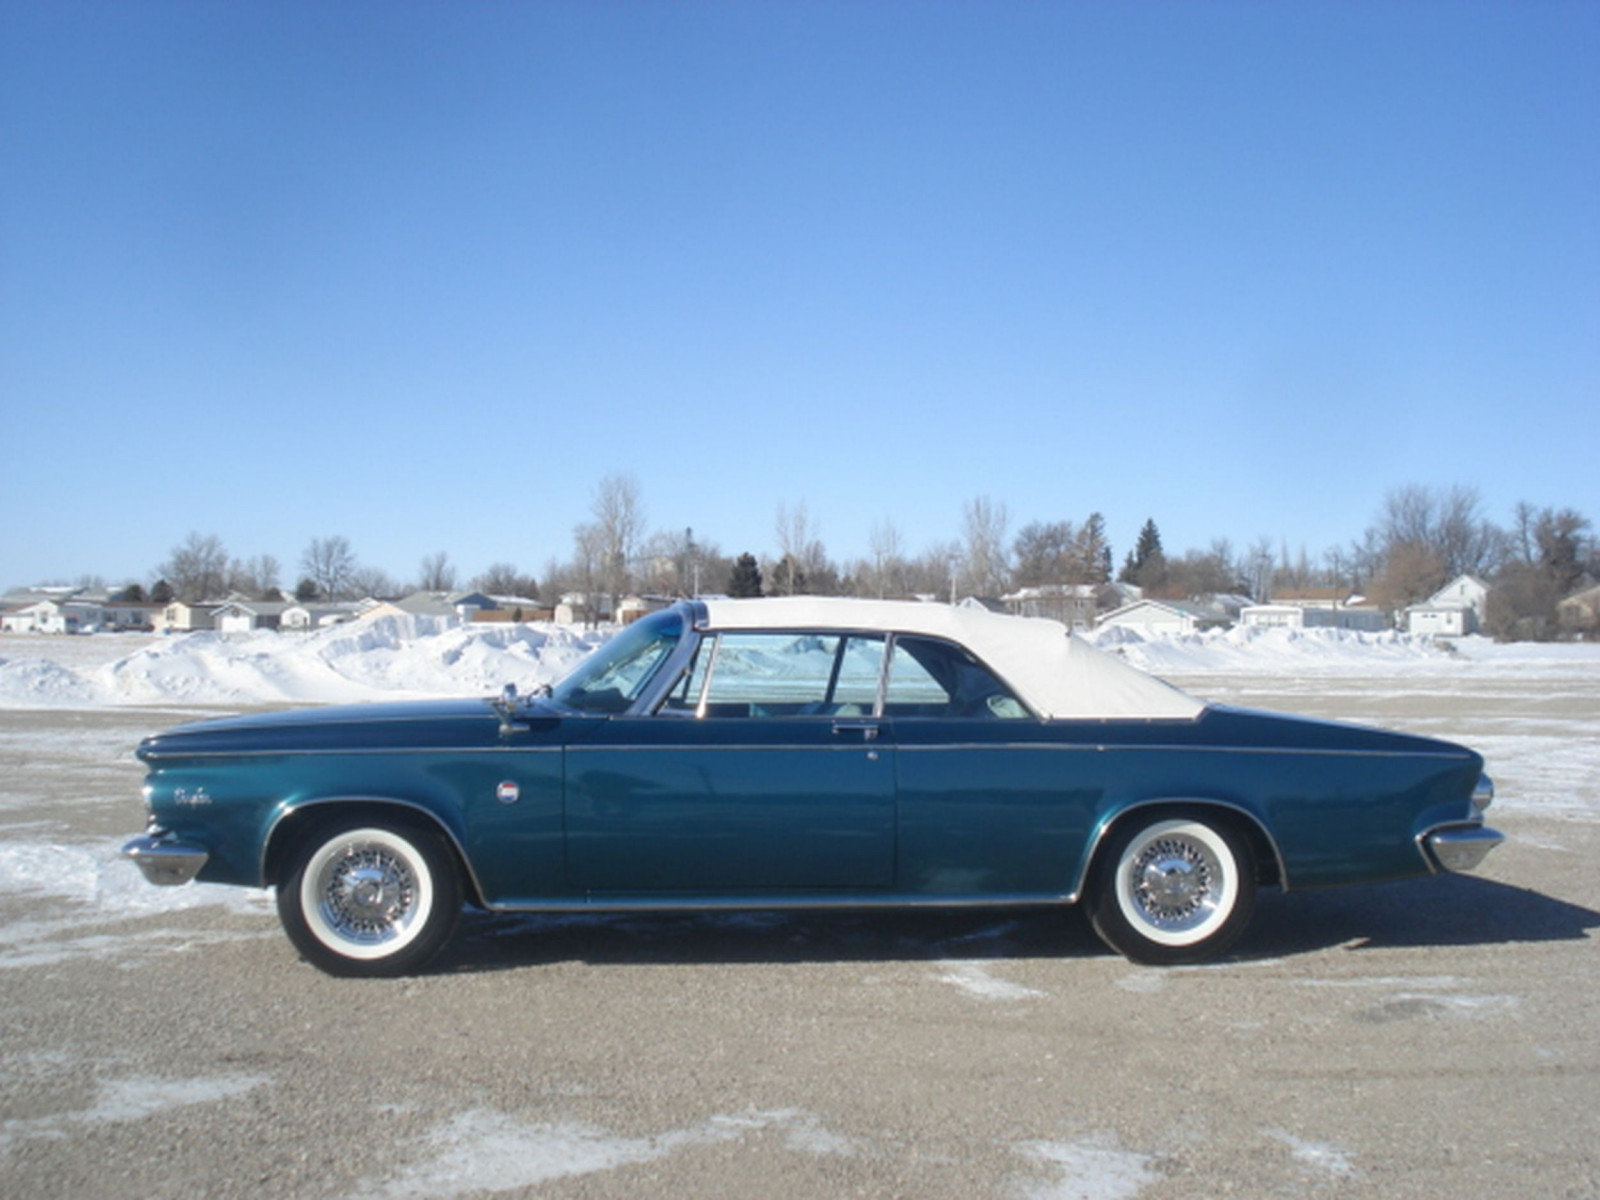 RARE 1963 Chrysler 300 Pace Setter Convertible Indy 500 Pace car - Image 13